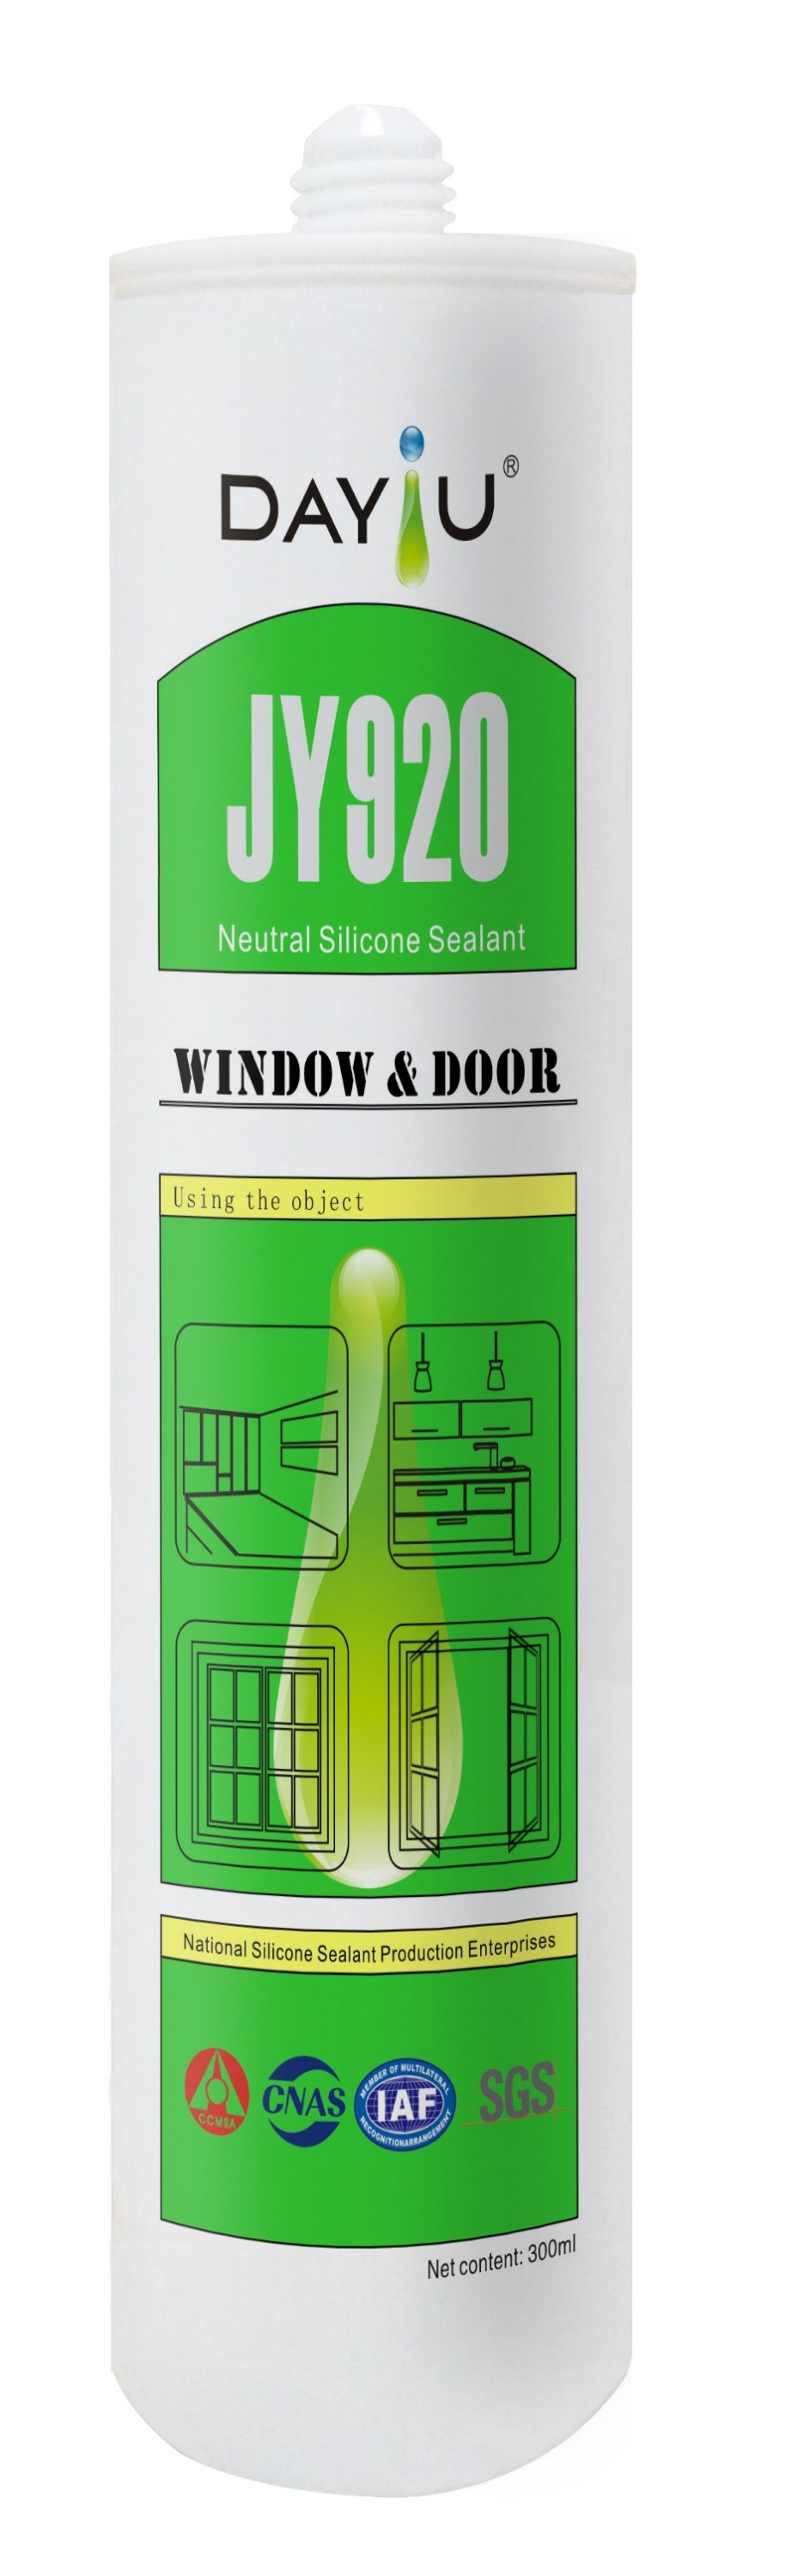 expoy resin weather proof silicone sealant the material is rtv JY920